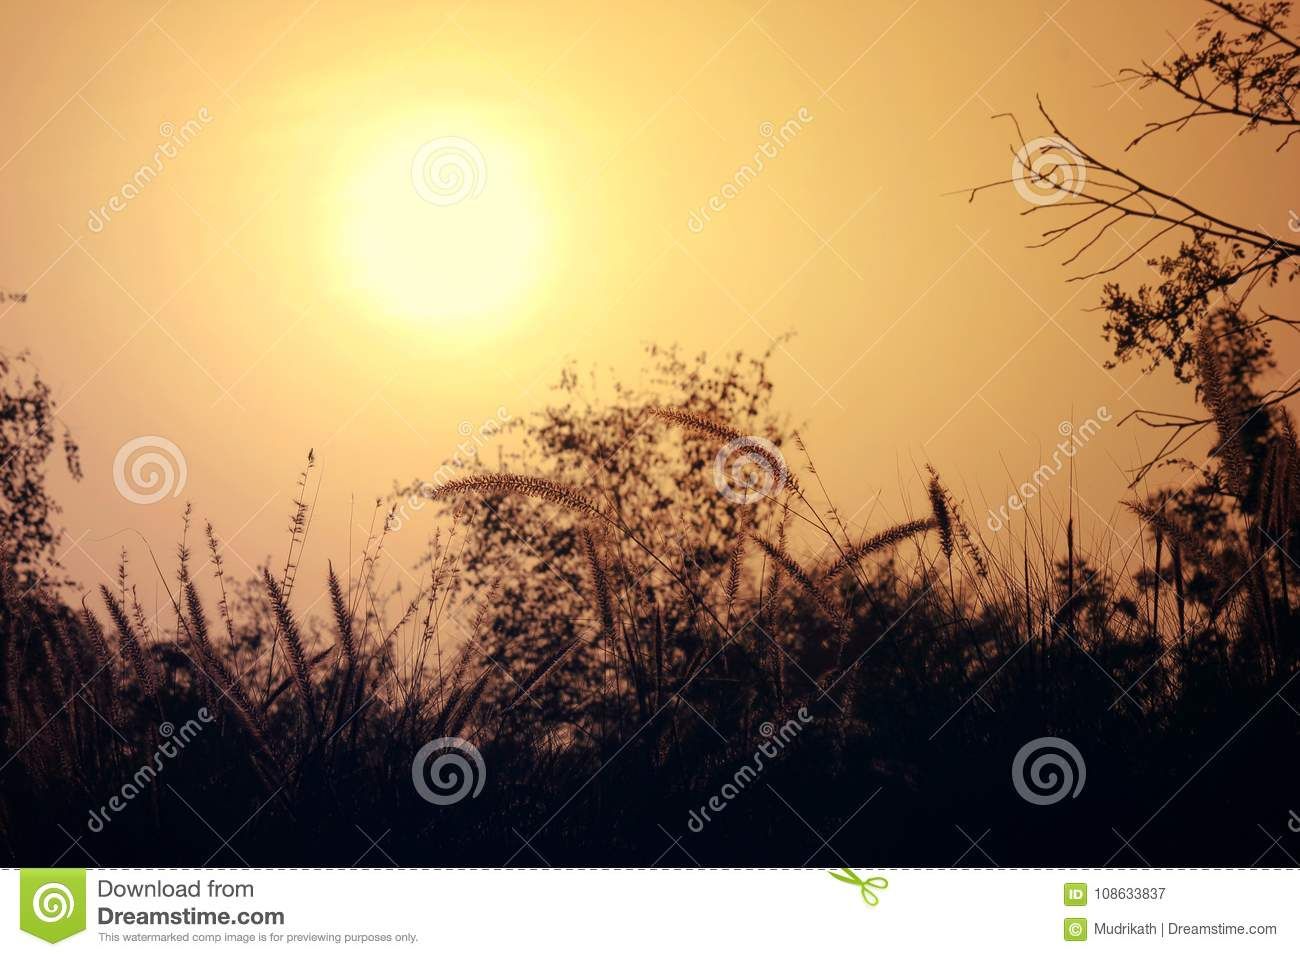 Beautiful nature scenery of sun, trees and sky. evening shot of picture, where the sun is setting.